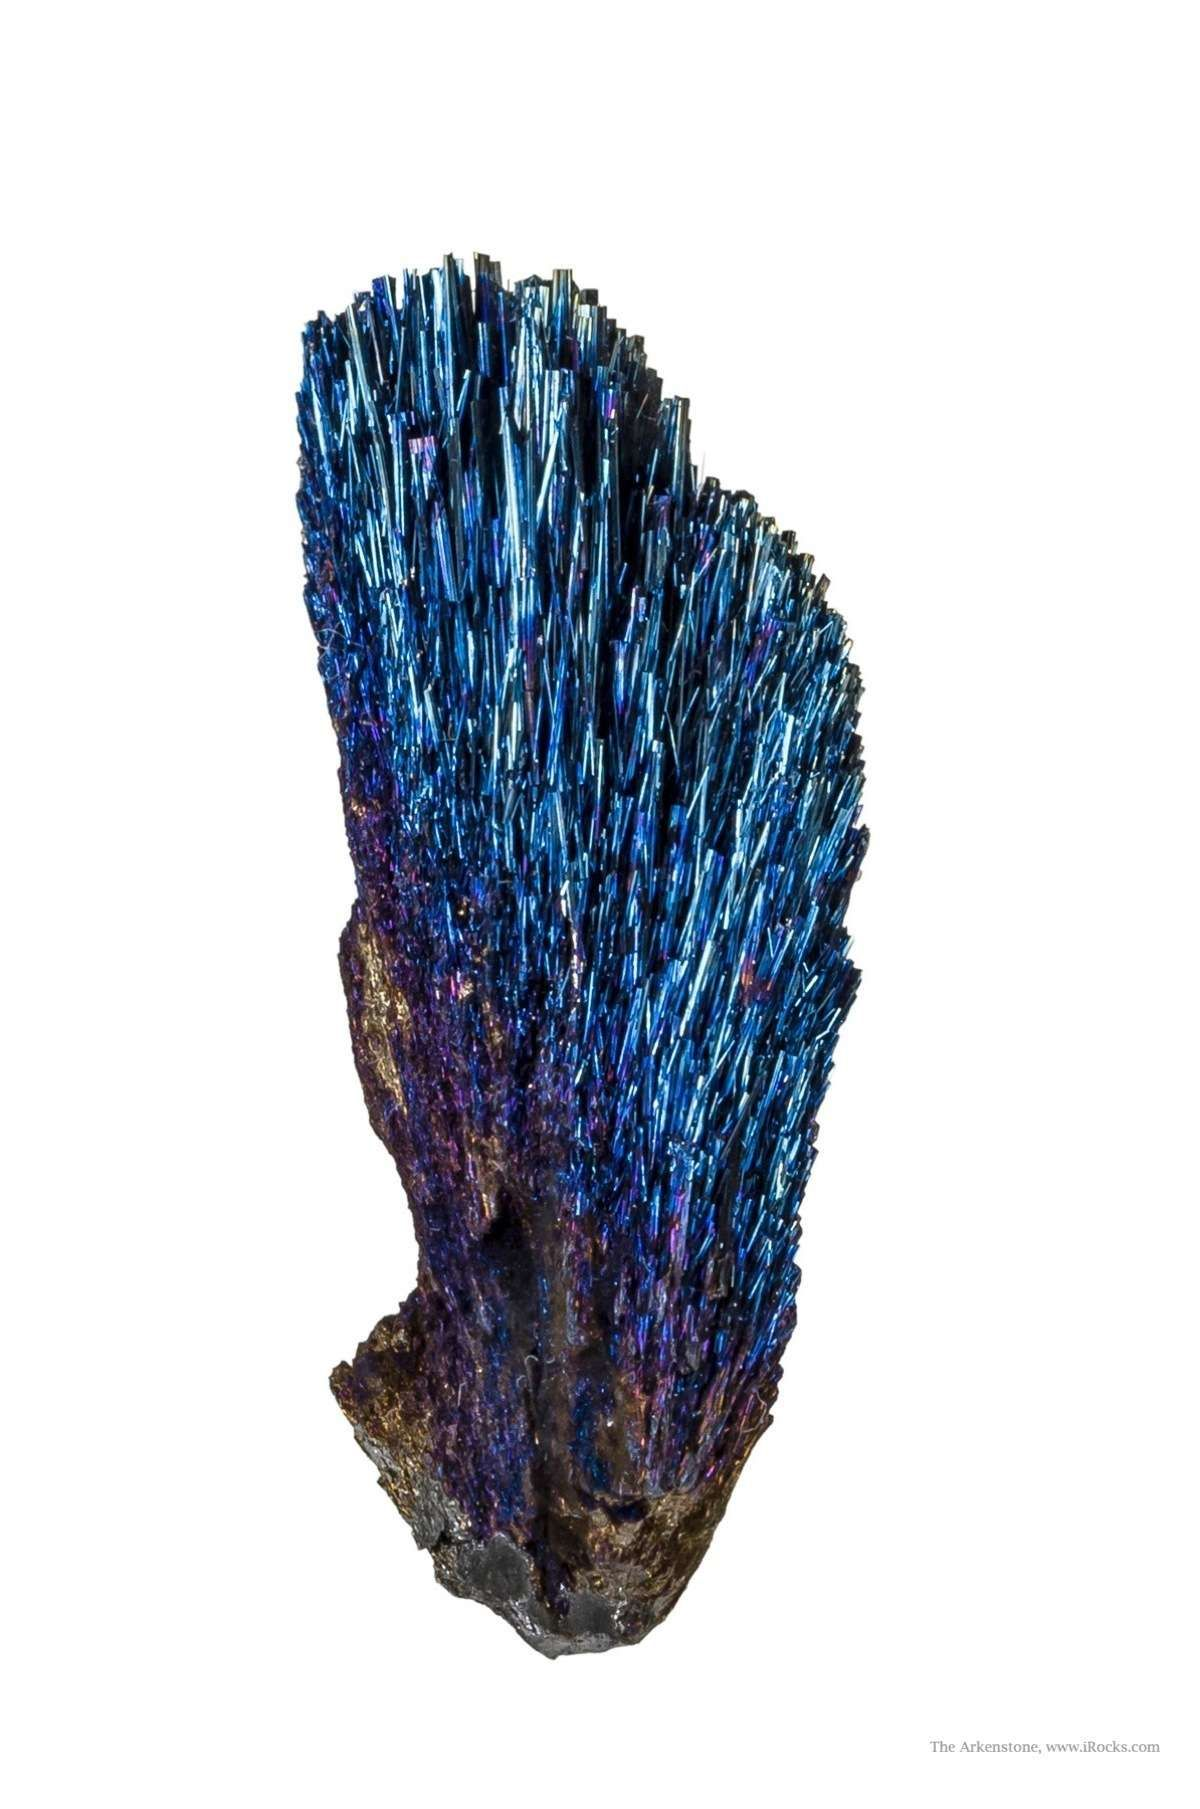 This Stunning Iridescent Specimen Rare Mineral Species This Truly